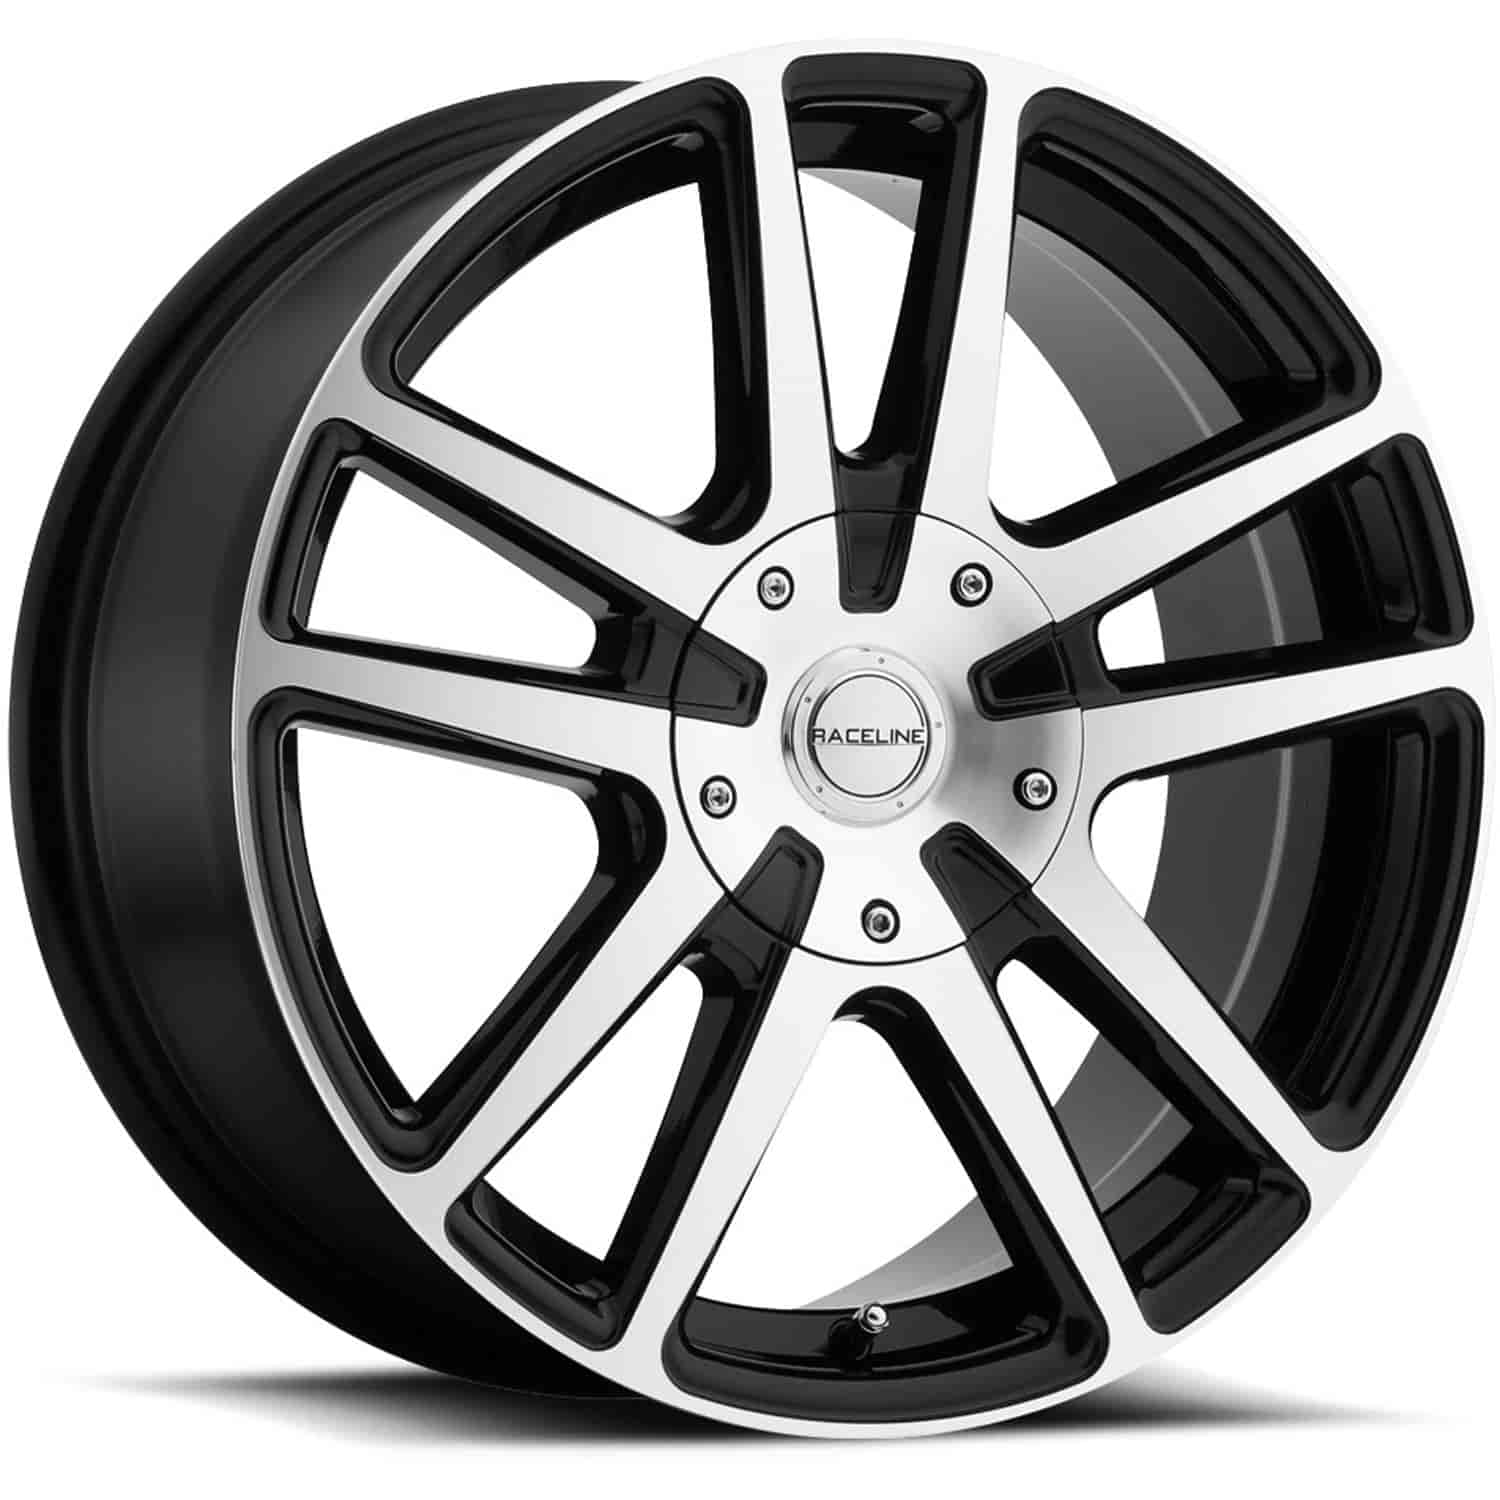 Raceline Wheels 145M5708940